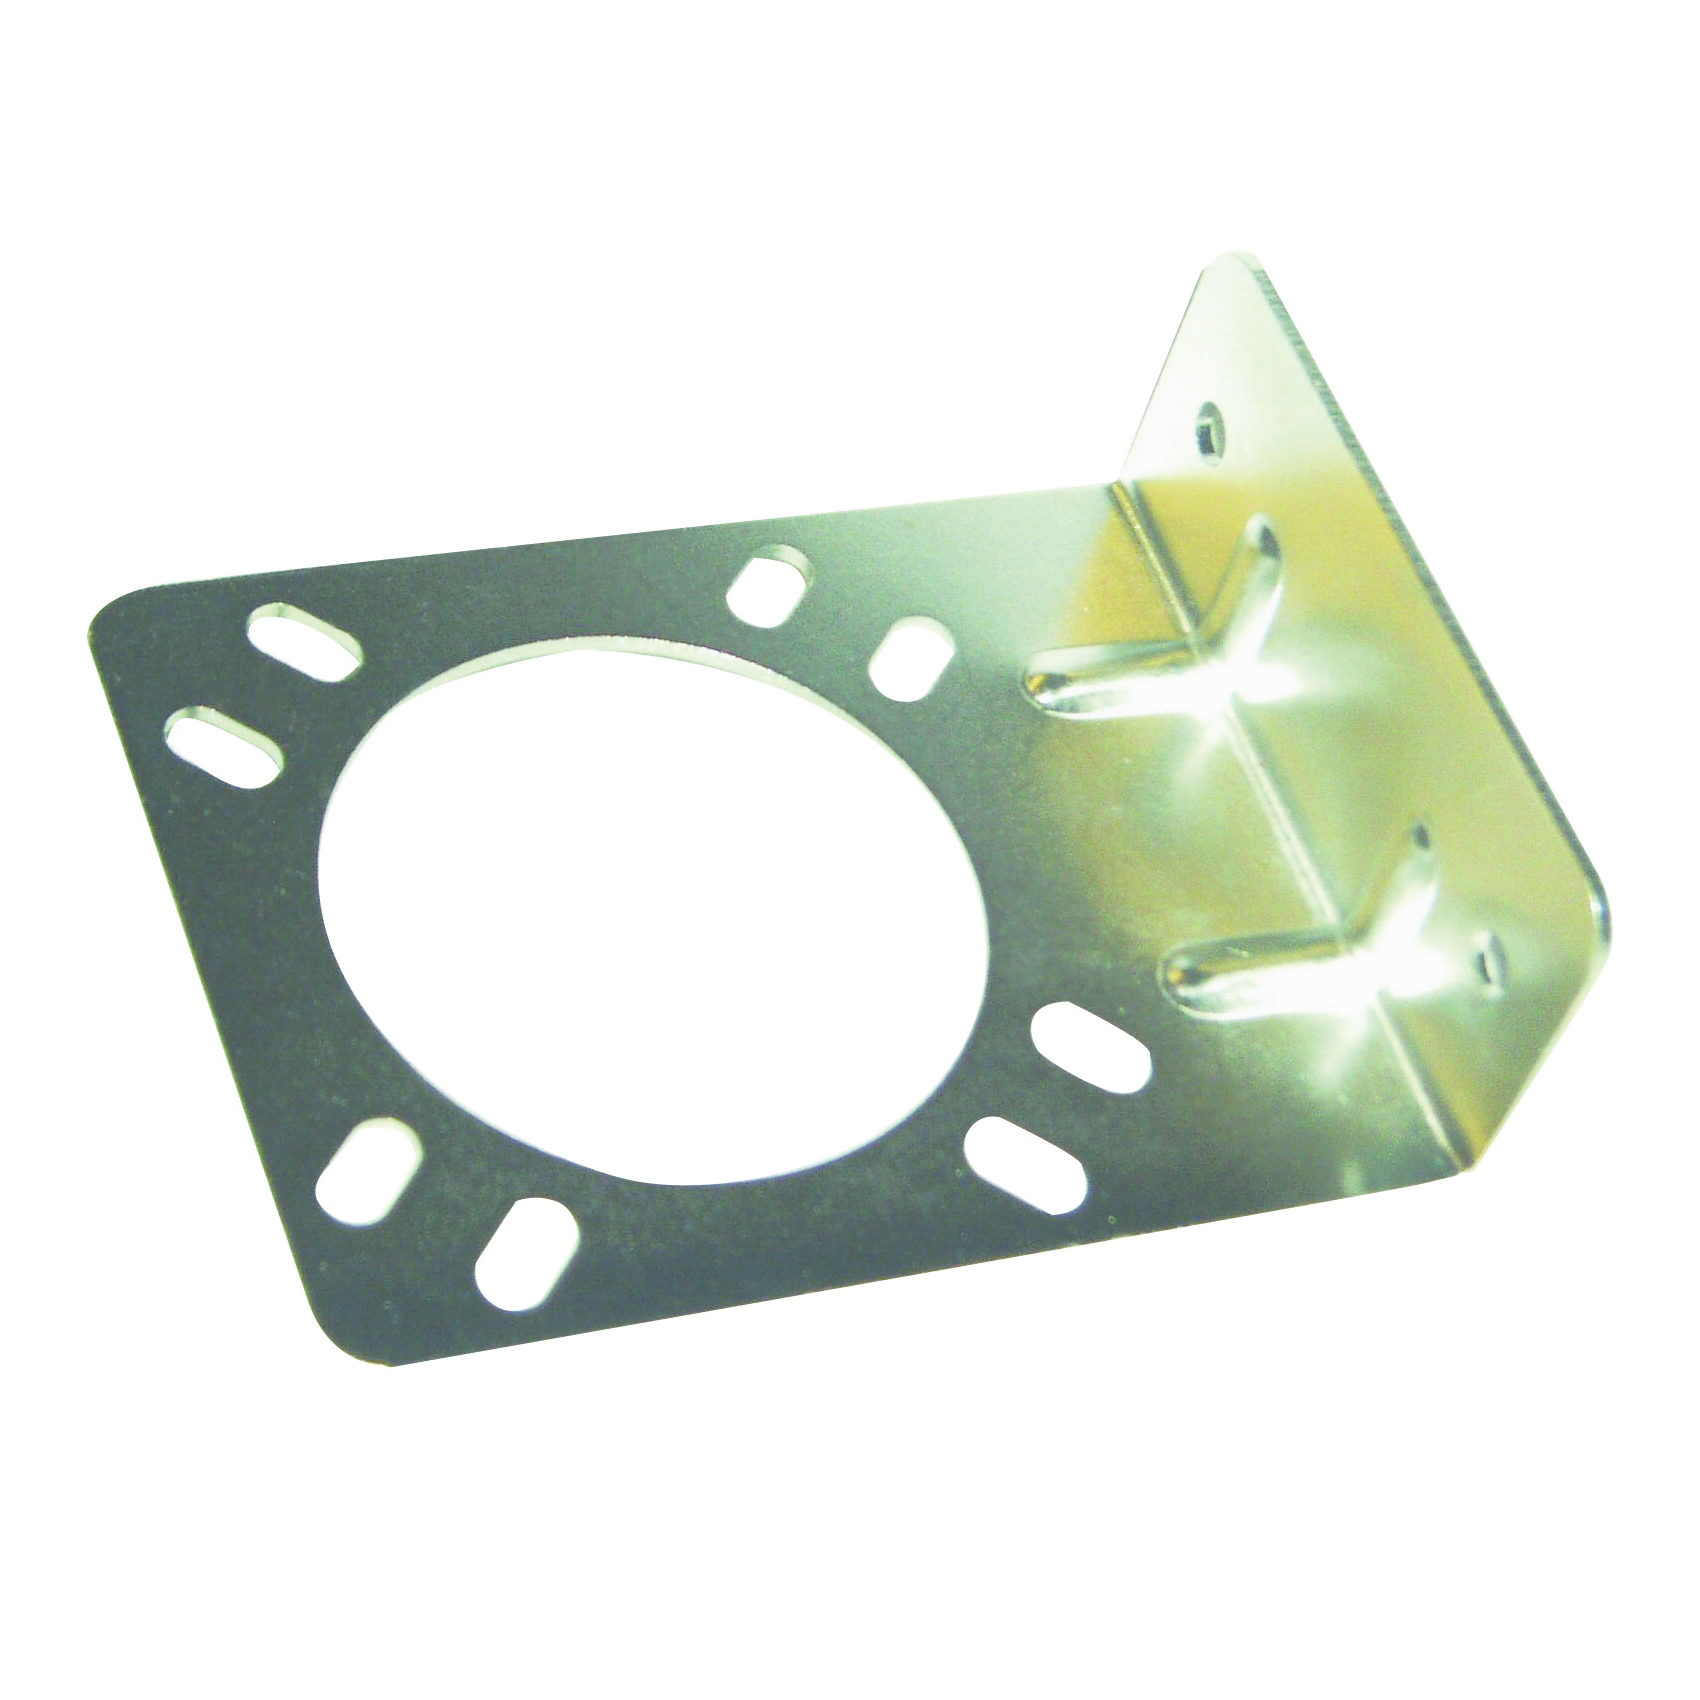 Picture of US Hardware RV-354C Connector Bracket, Stamped Steel, Mill, For: RV Trailer Connector Metal or Plastic